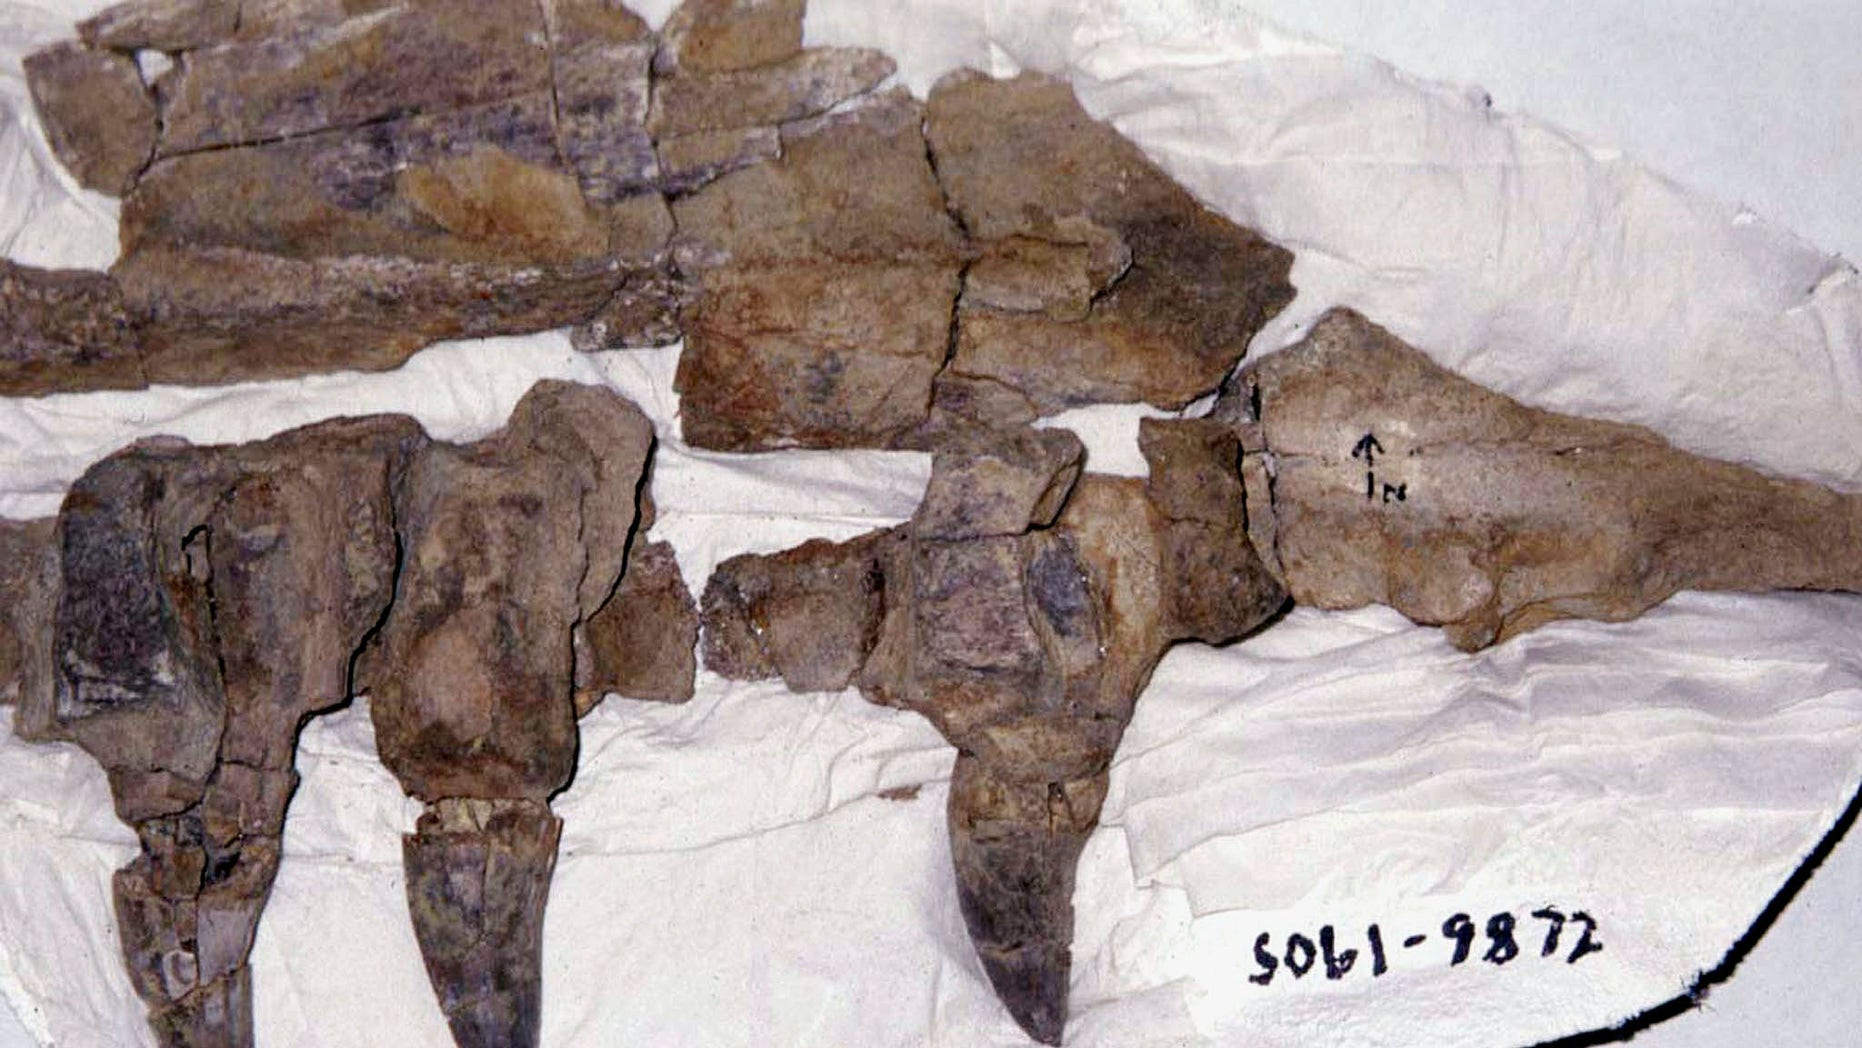 File photo: The upper jaw of a mosasaur is shown in an undated hand out photo, one of the many dinosour fossils that was uncovered after an expedition by a US National Science Foundation team in 1998 to the remote Antartica Peninsular and nearby islands.